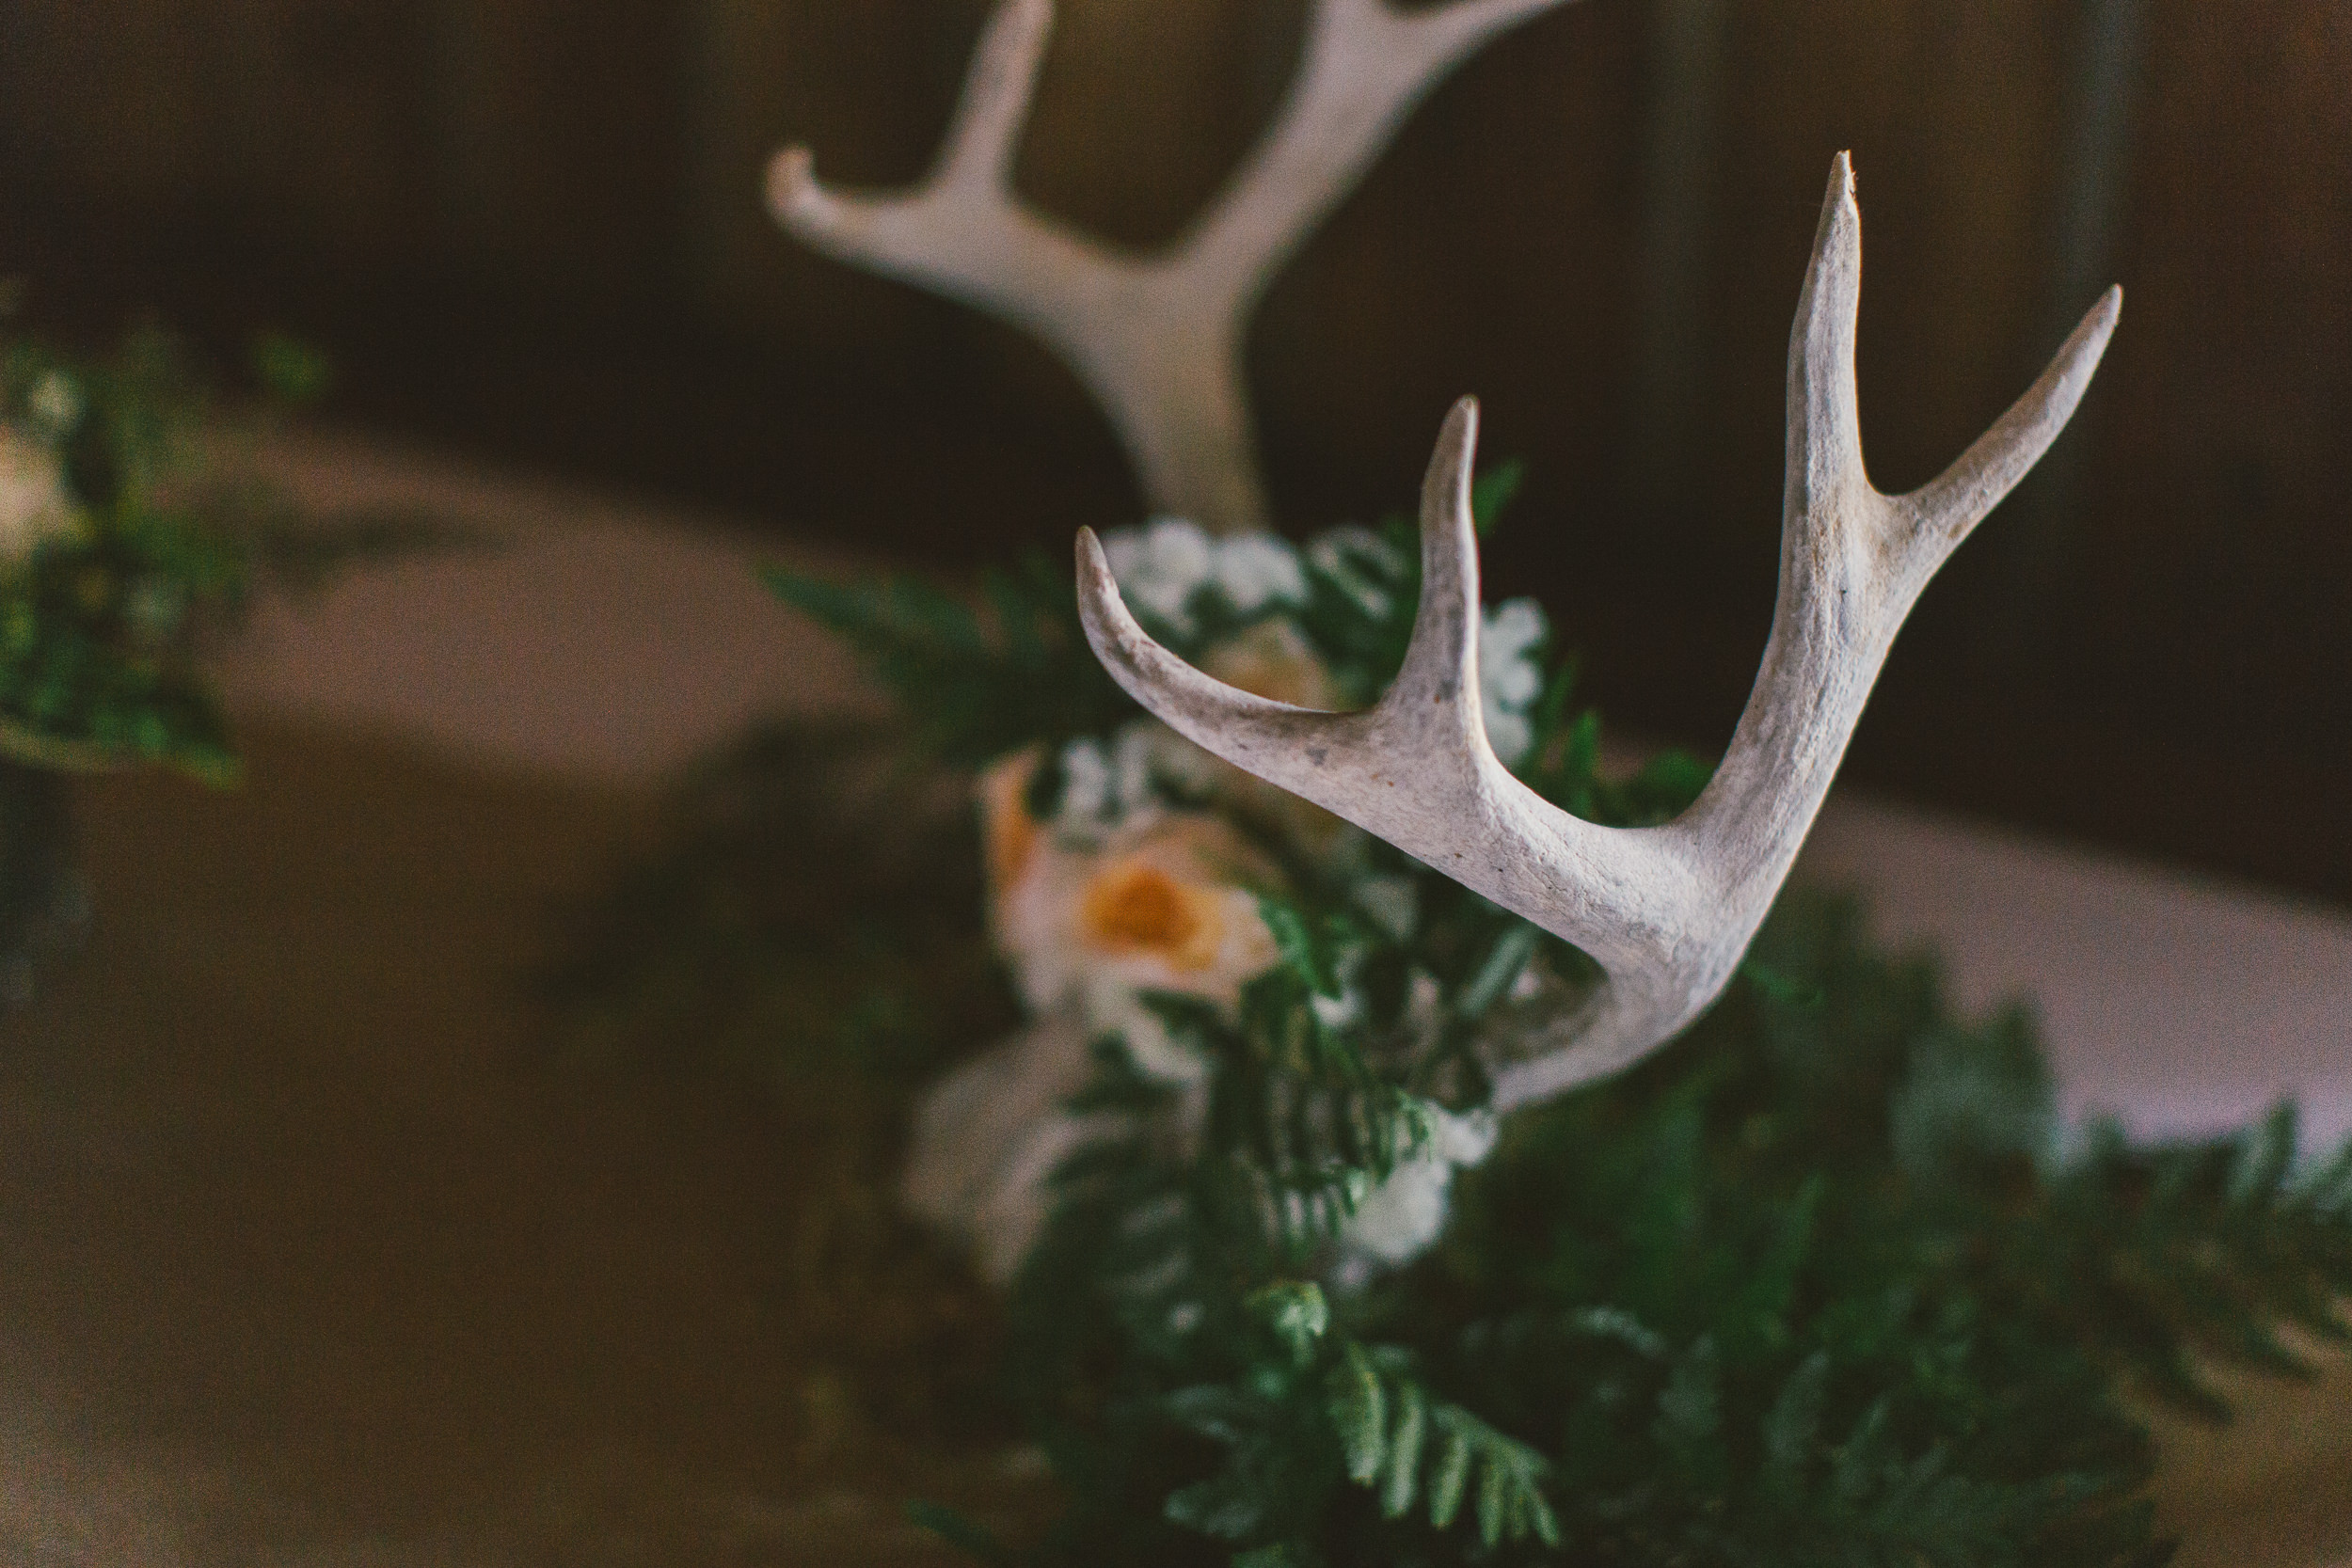 national park themed wedding details